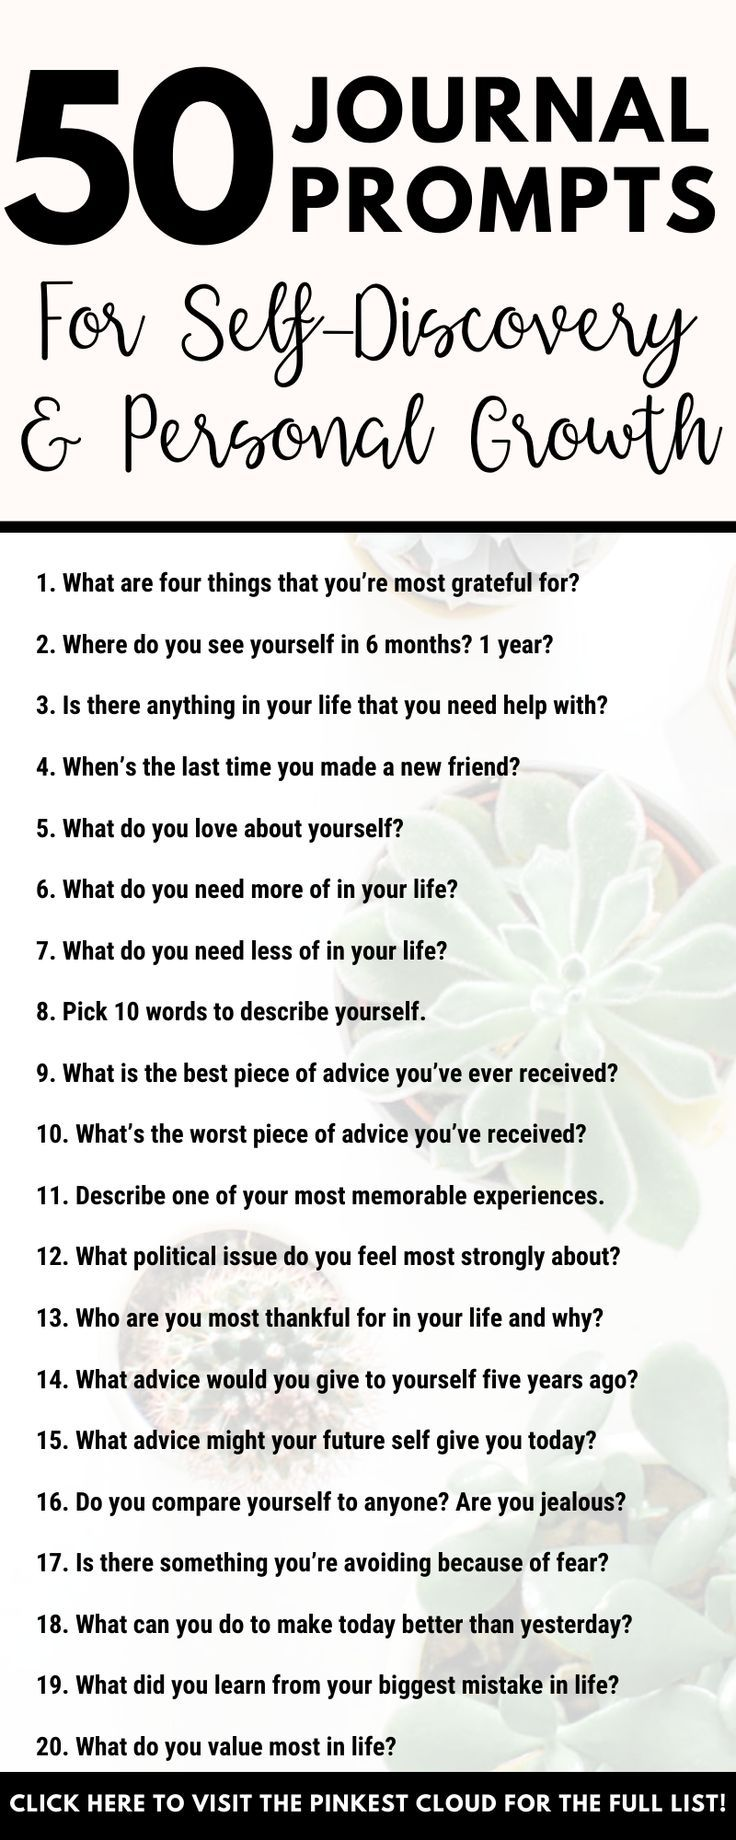 50 Journal Prompts For Self-Discovery #personalgrowth